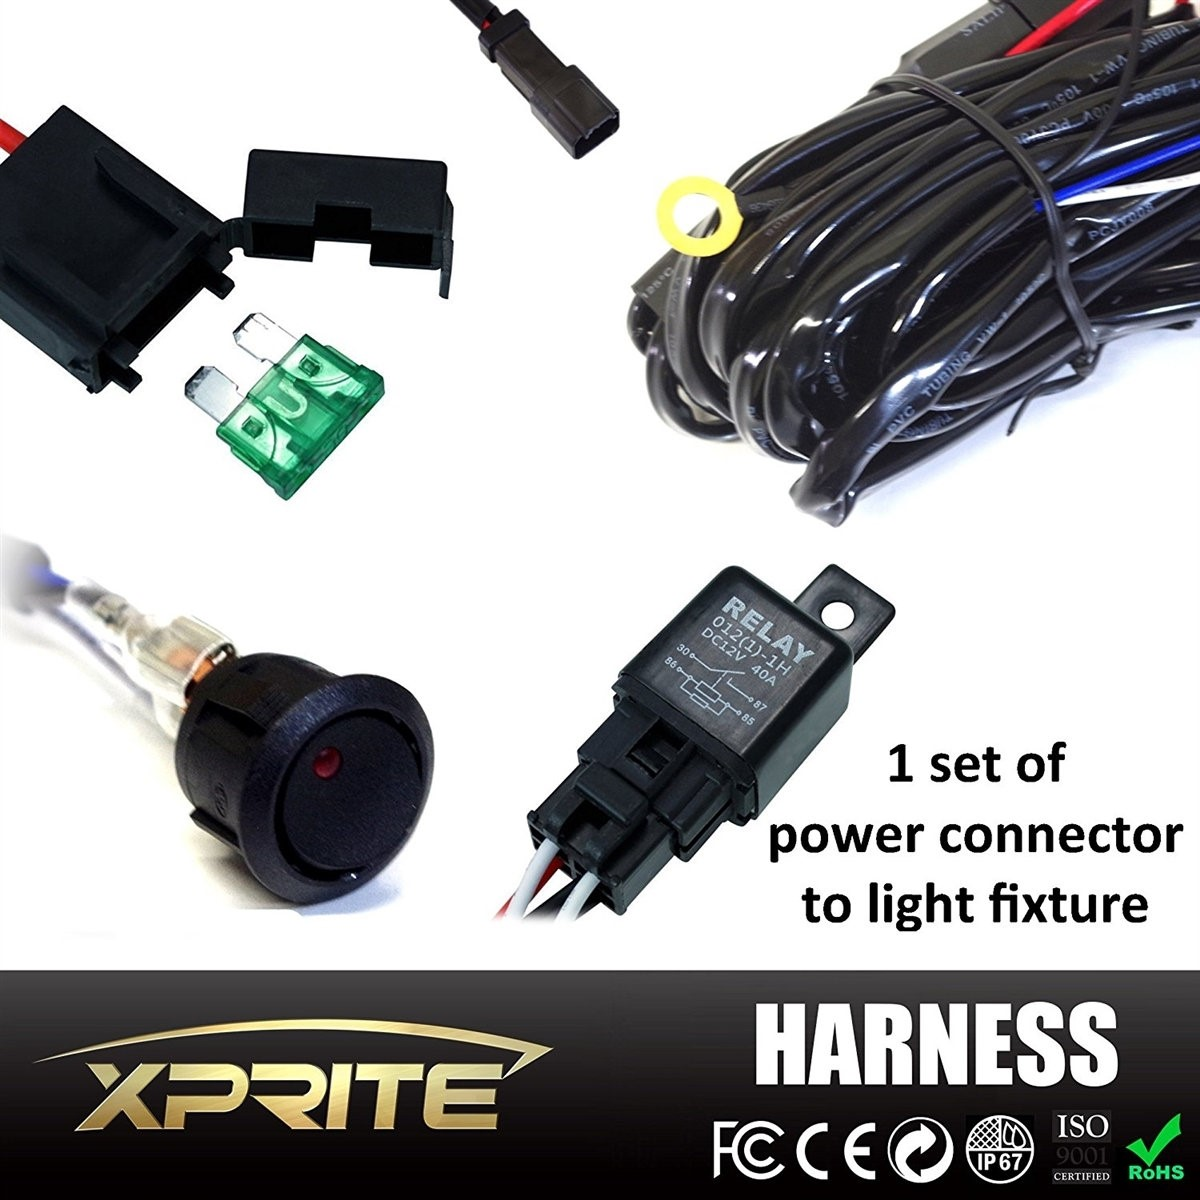 Xprite LED Light Bar Wiring Harness with 4 Leg - 40 Amp Relay ON OFF on pony harness, swing harness, oxygen sensor extension harness, nakamichi harness, fall protection harness, engine harness, suspension harness, amp bypass harness, safety harness, cable harness, maxi-seal harness, obd0 to obd1 conversion harness, alpine stereo harness, electrical harness, battery harness, radio harness, dog harness, pet harness,